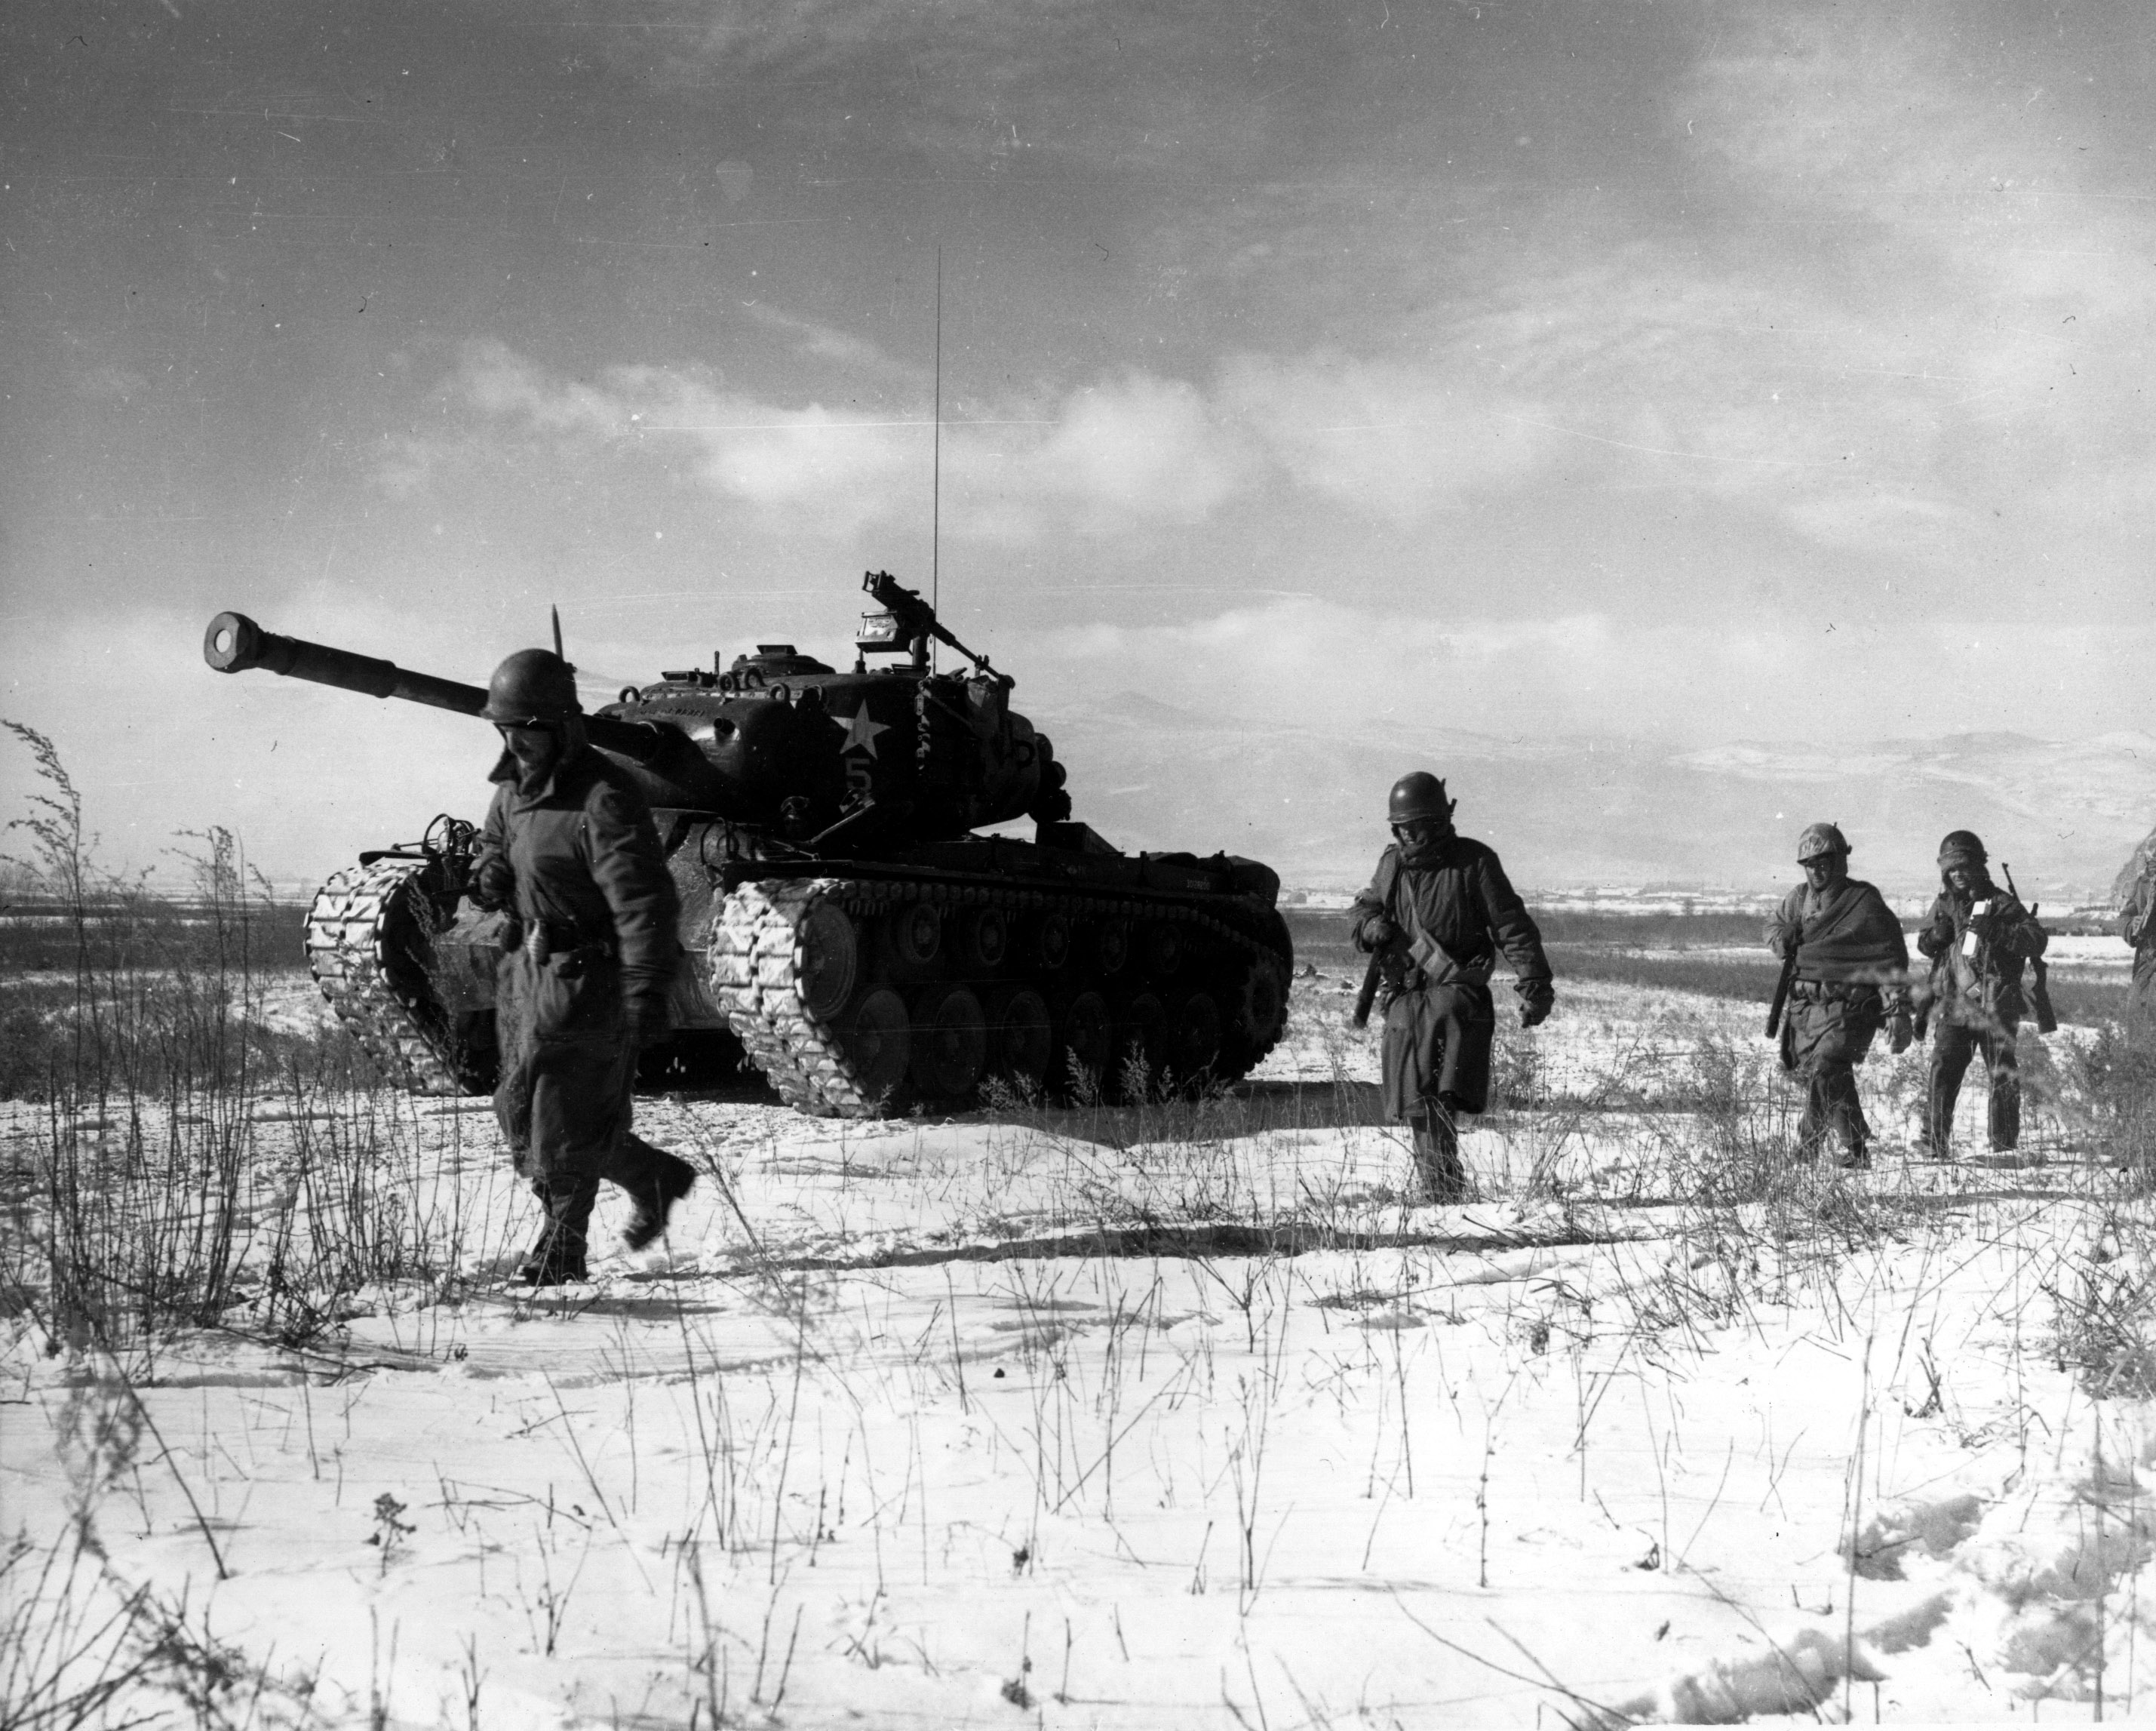 http://upload.wikimedia.org/wikipedia/commons/7/7b/Chosin.jpg